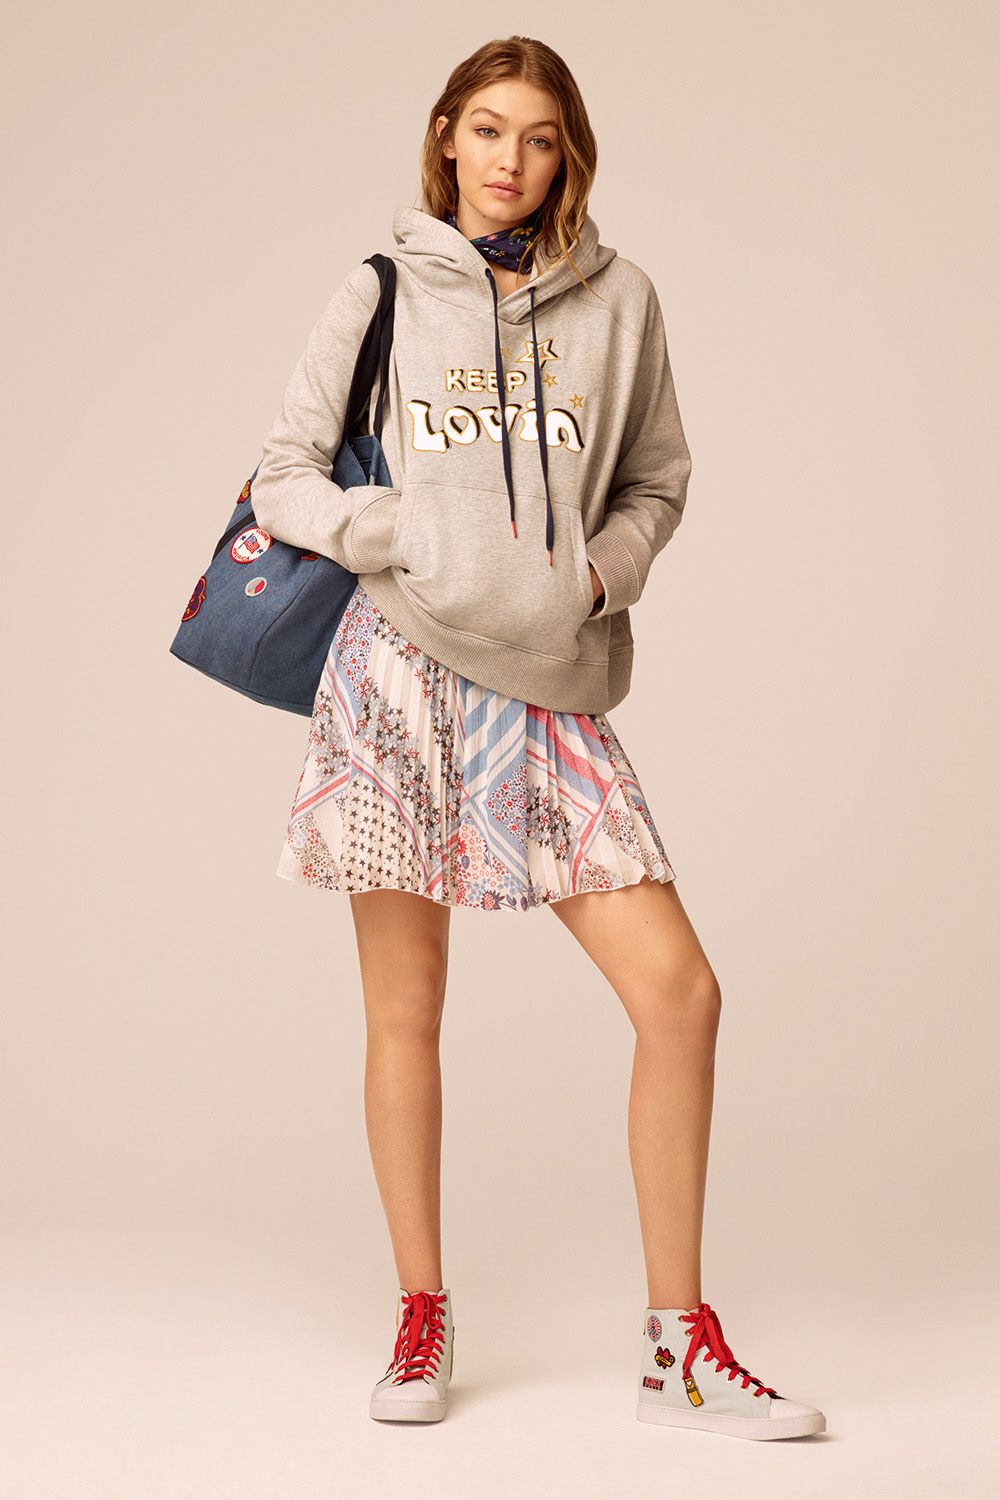 39762f6f Gigi x Tommy Spring 2017 Collection - See Gigi Hadid's Second Collection  for Tommy Hilfiger